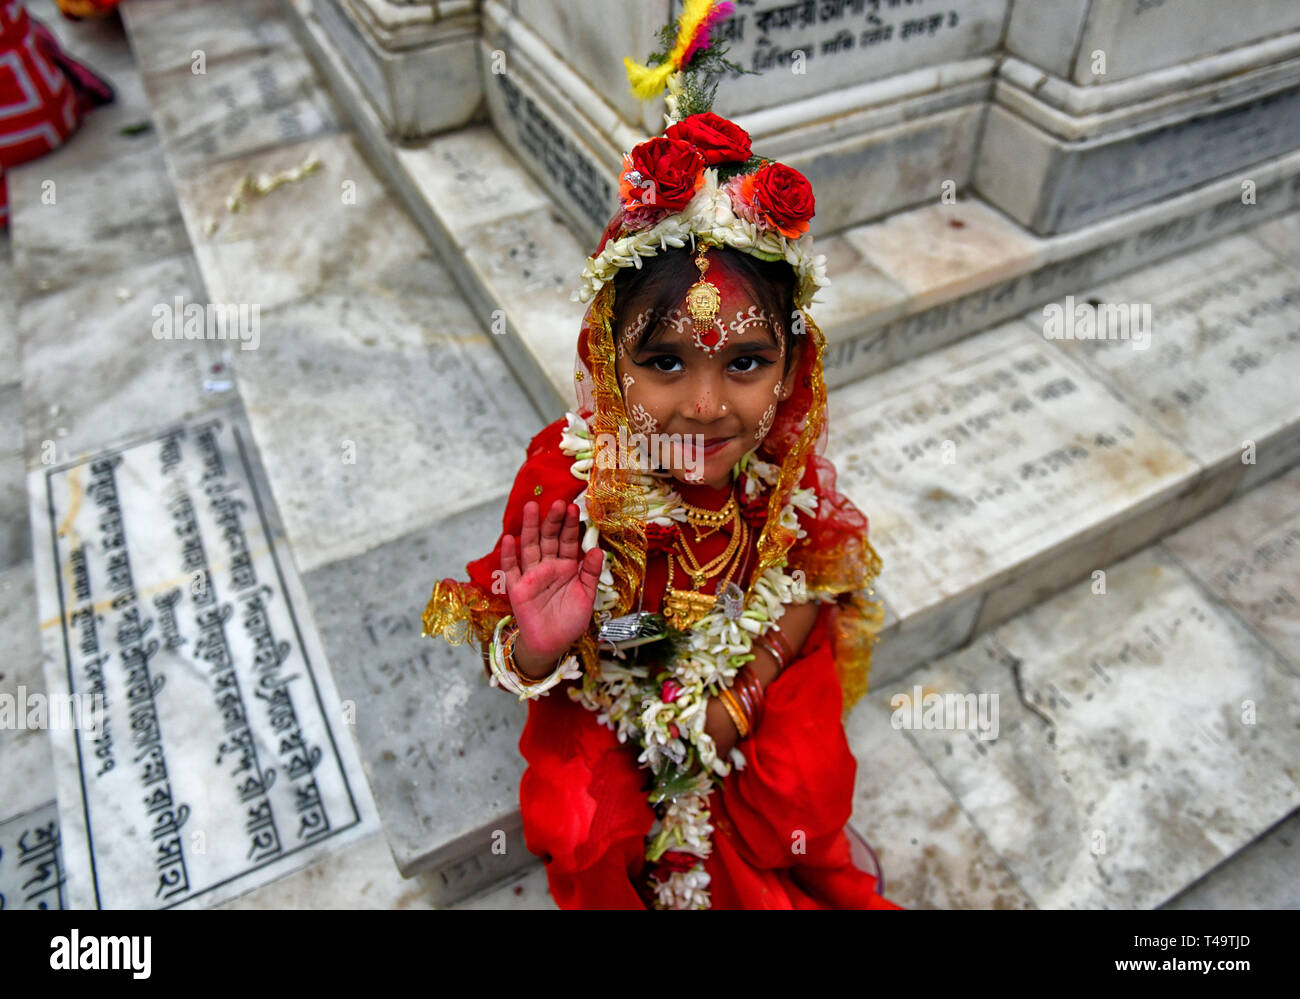 Kolkata, India  14th Apr 2019  A young girl seen